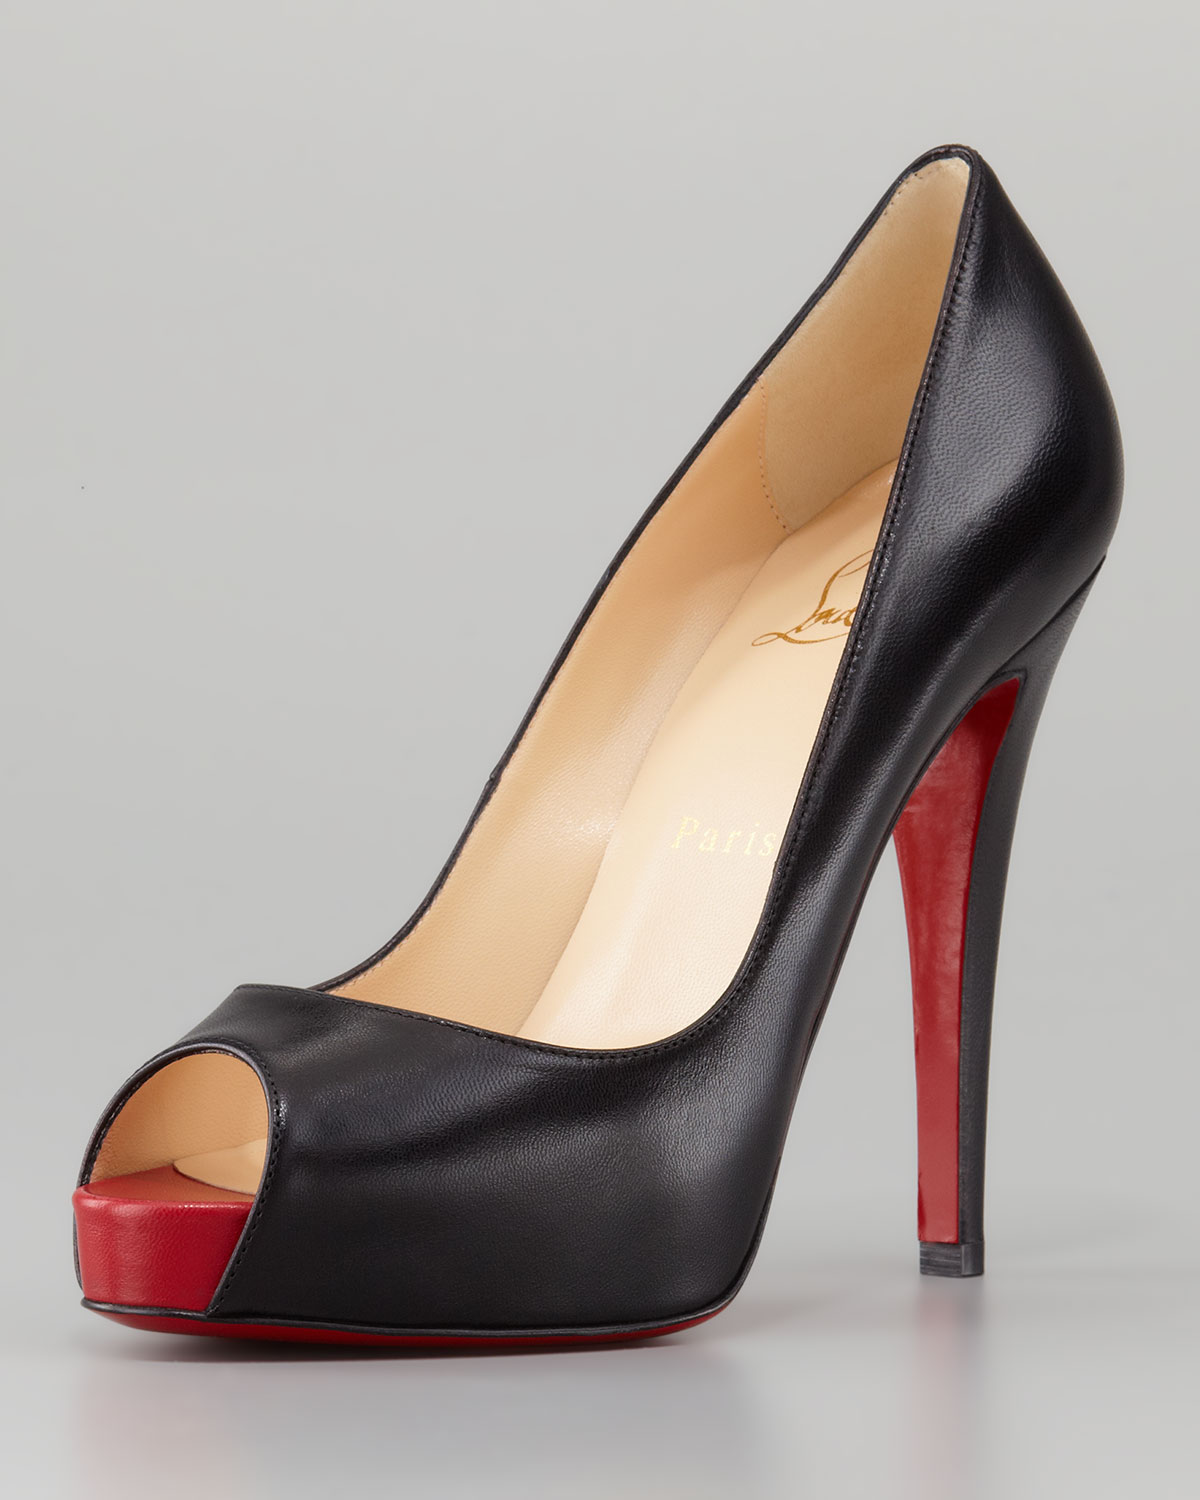 lyst christian louboutin very prive leather platform red sole pump rh lyst com